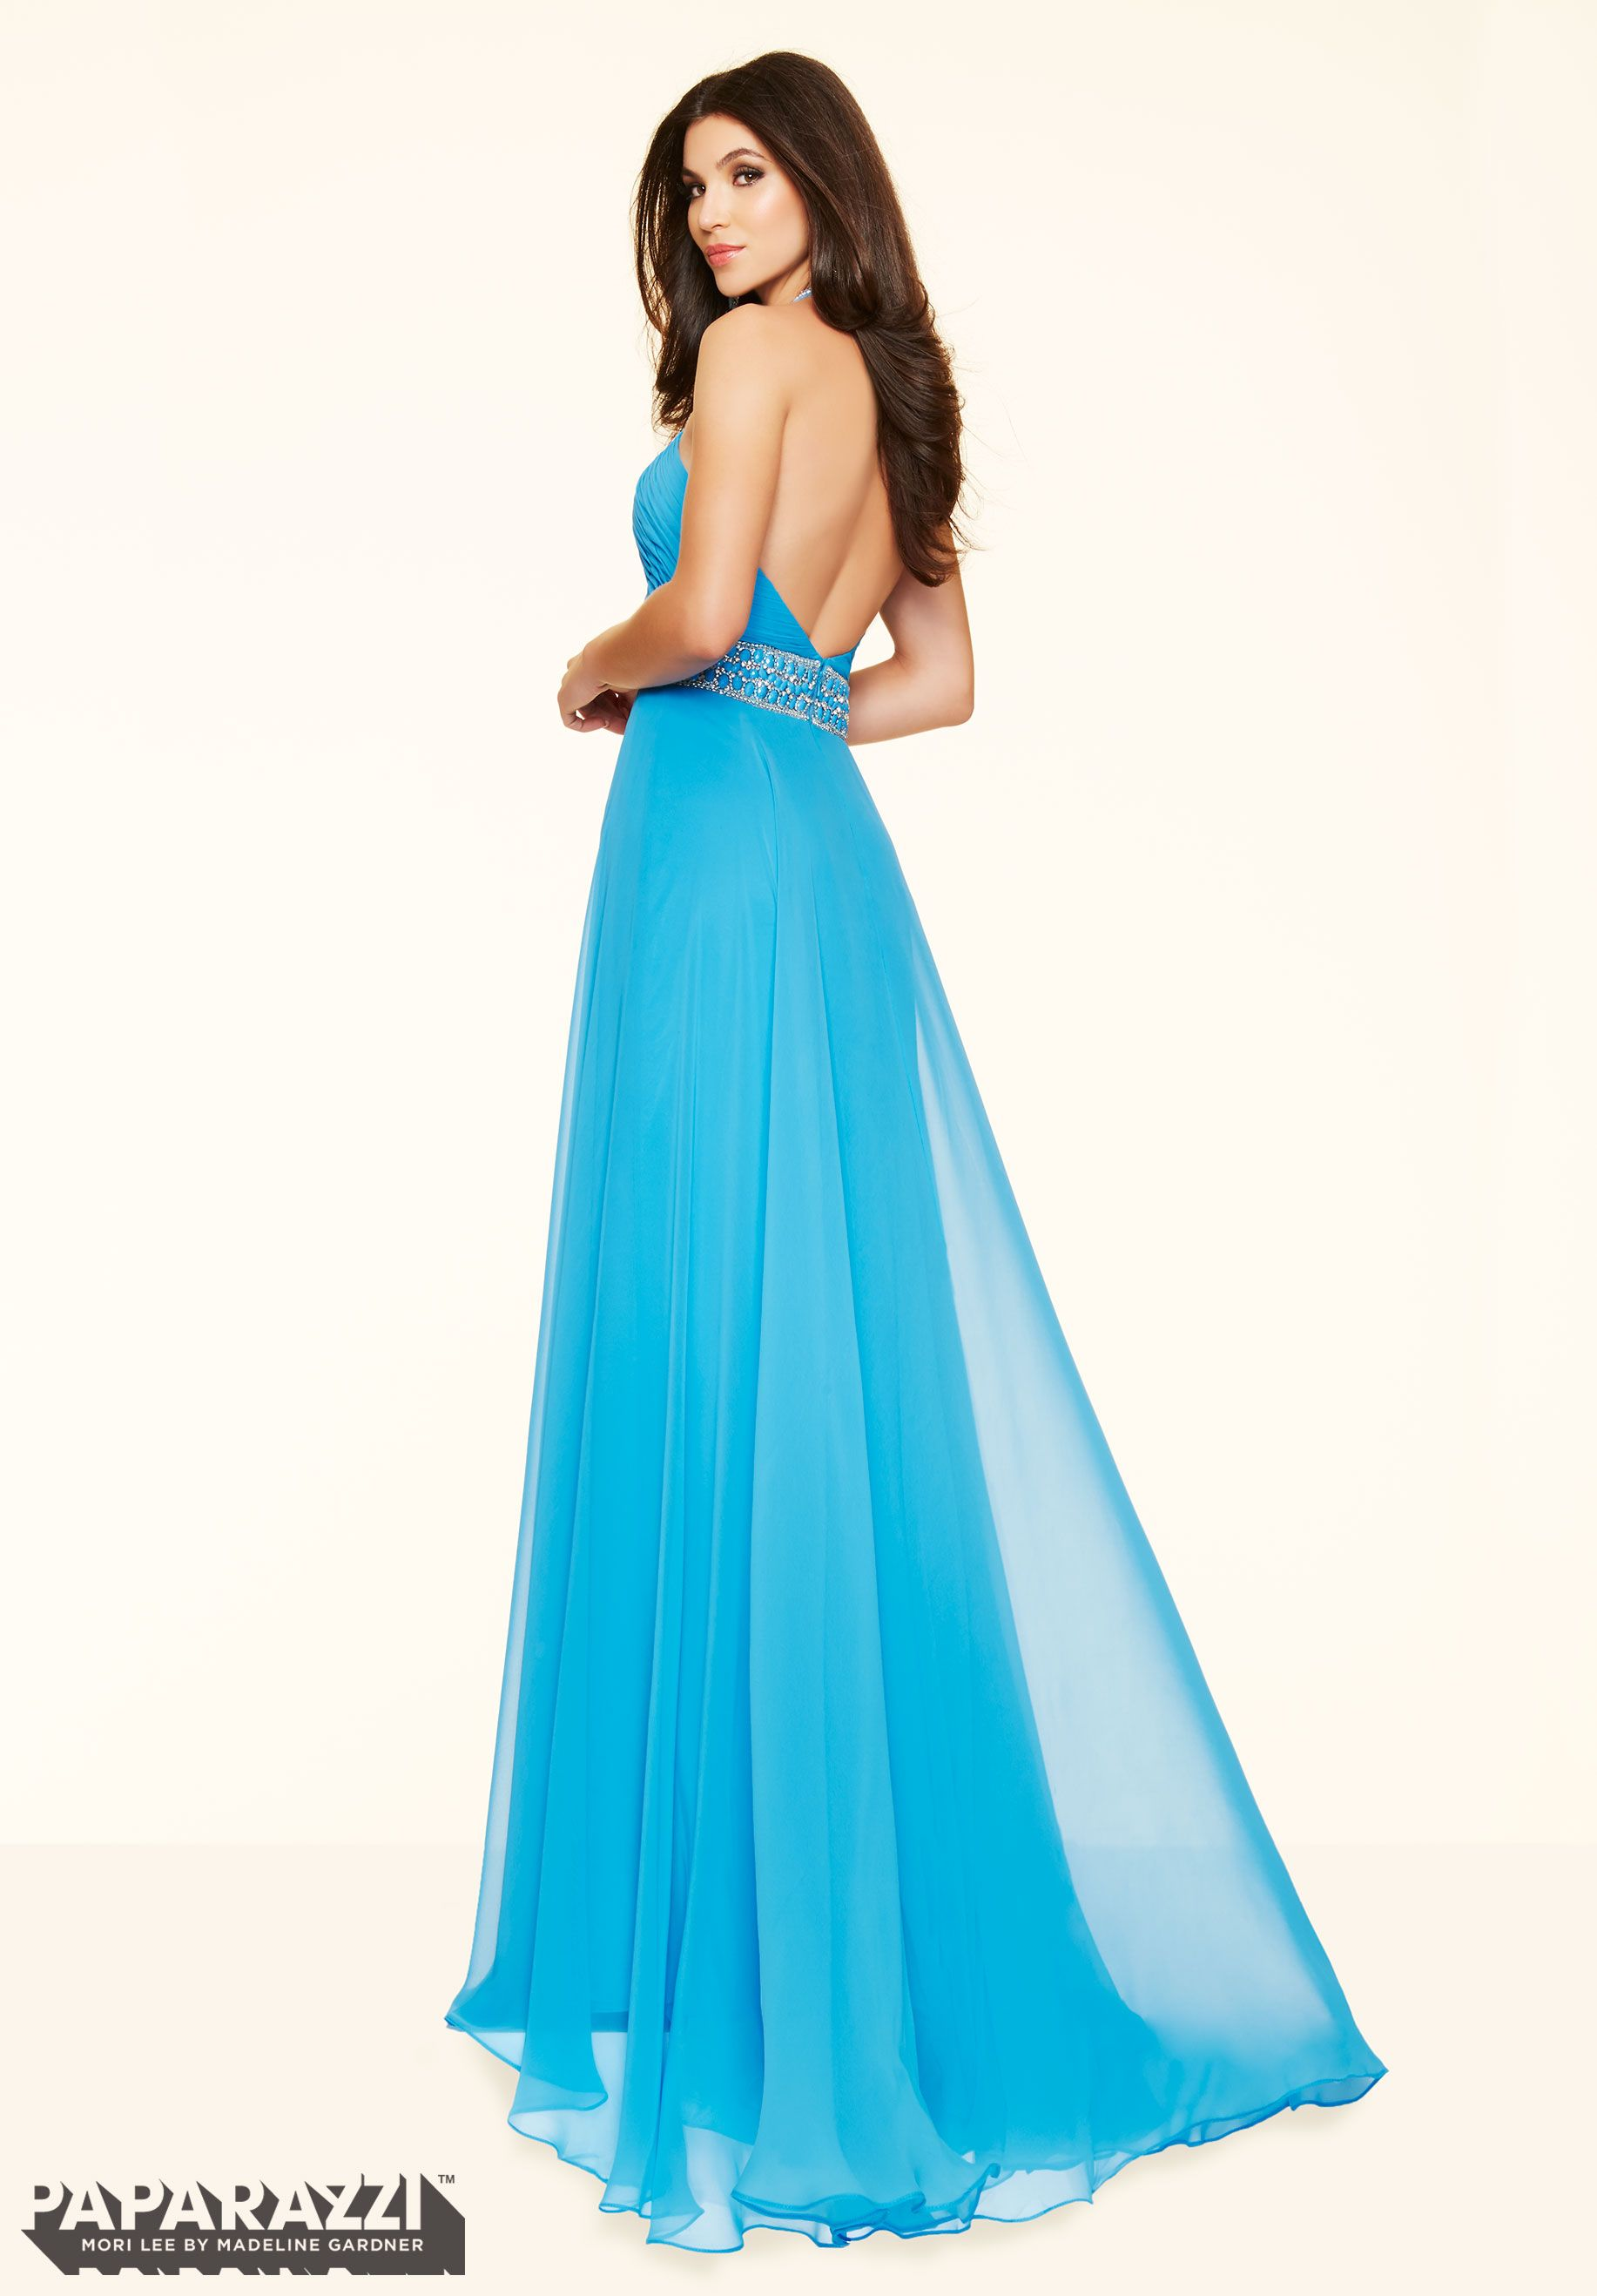 Prom Dresses by Paparazzi Prom - Dress Style 98112 | PROM ...